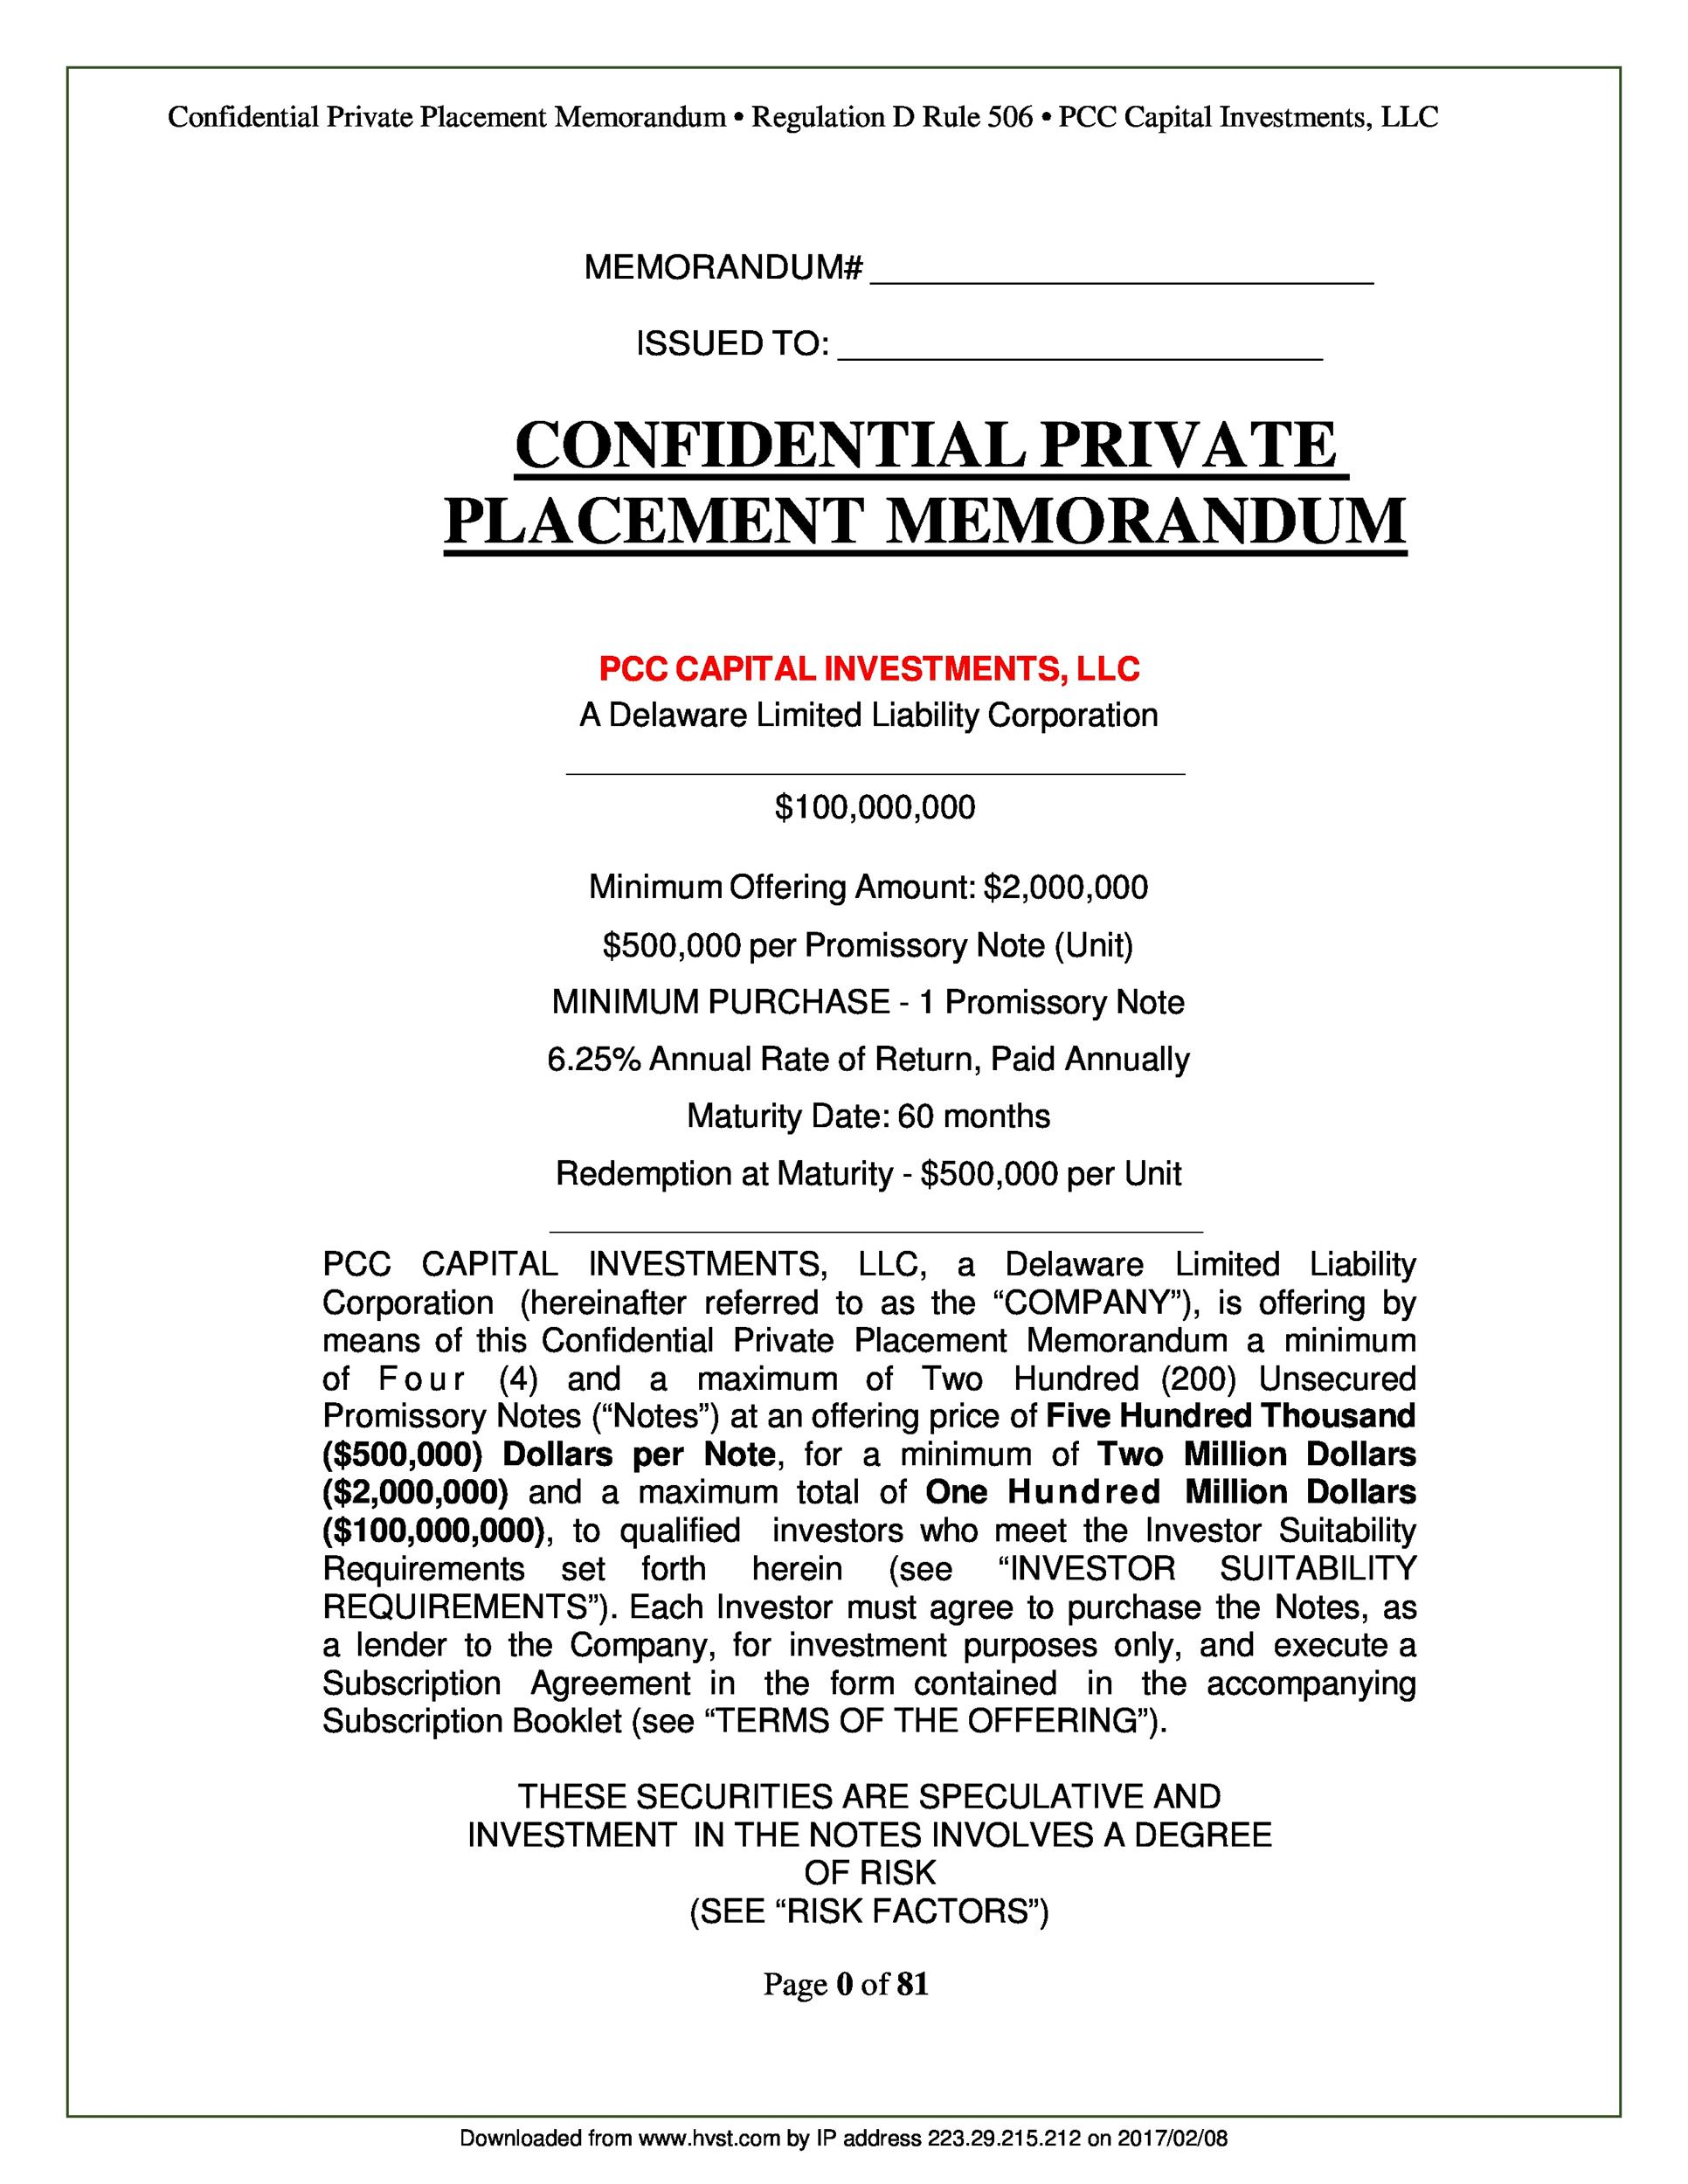 Free private placement memorandum template 09